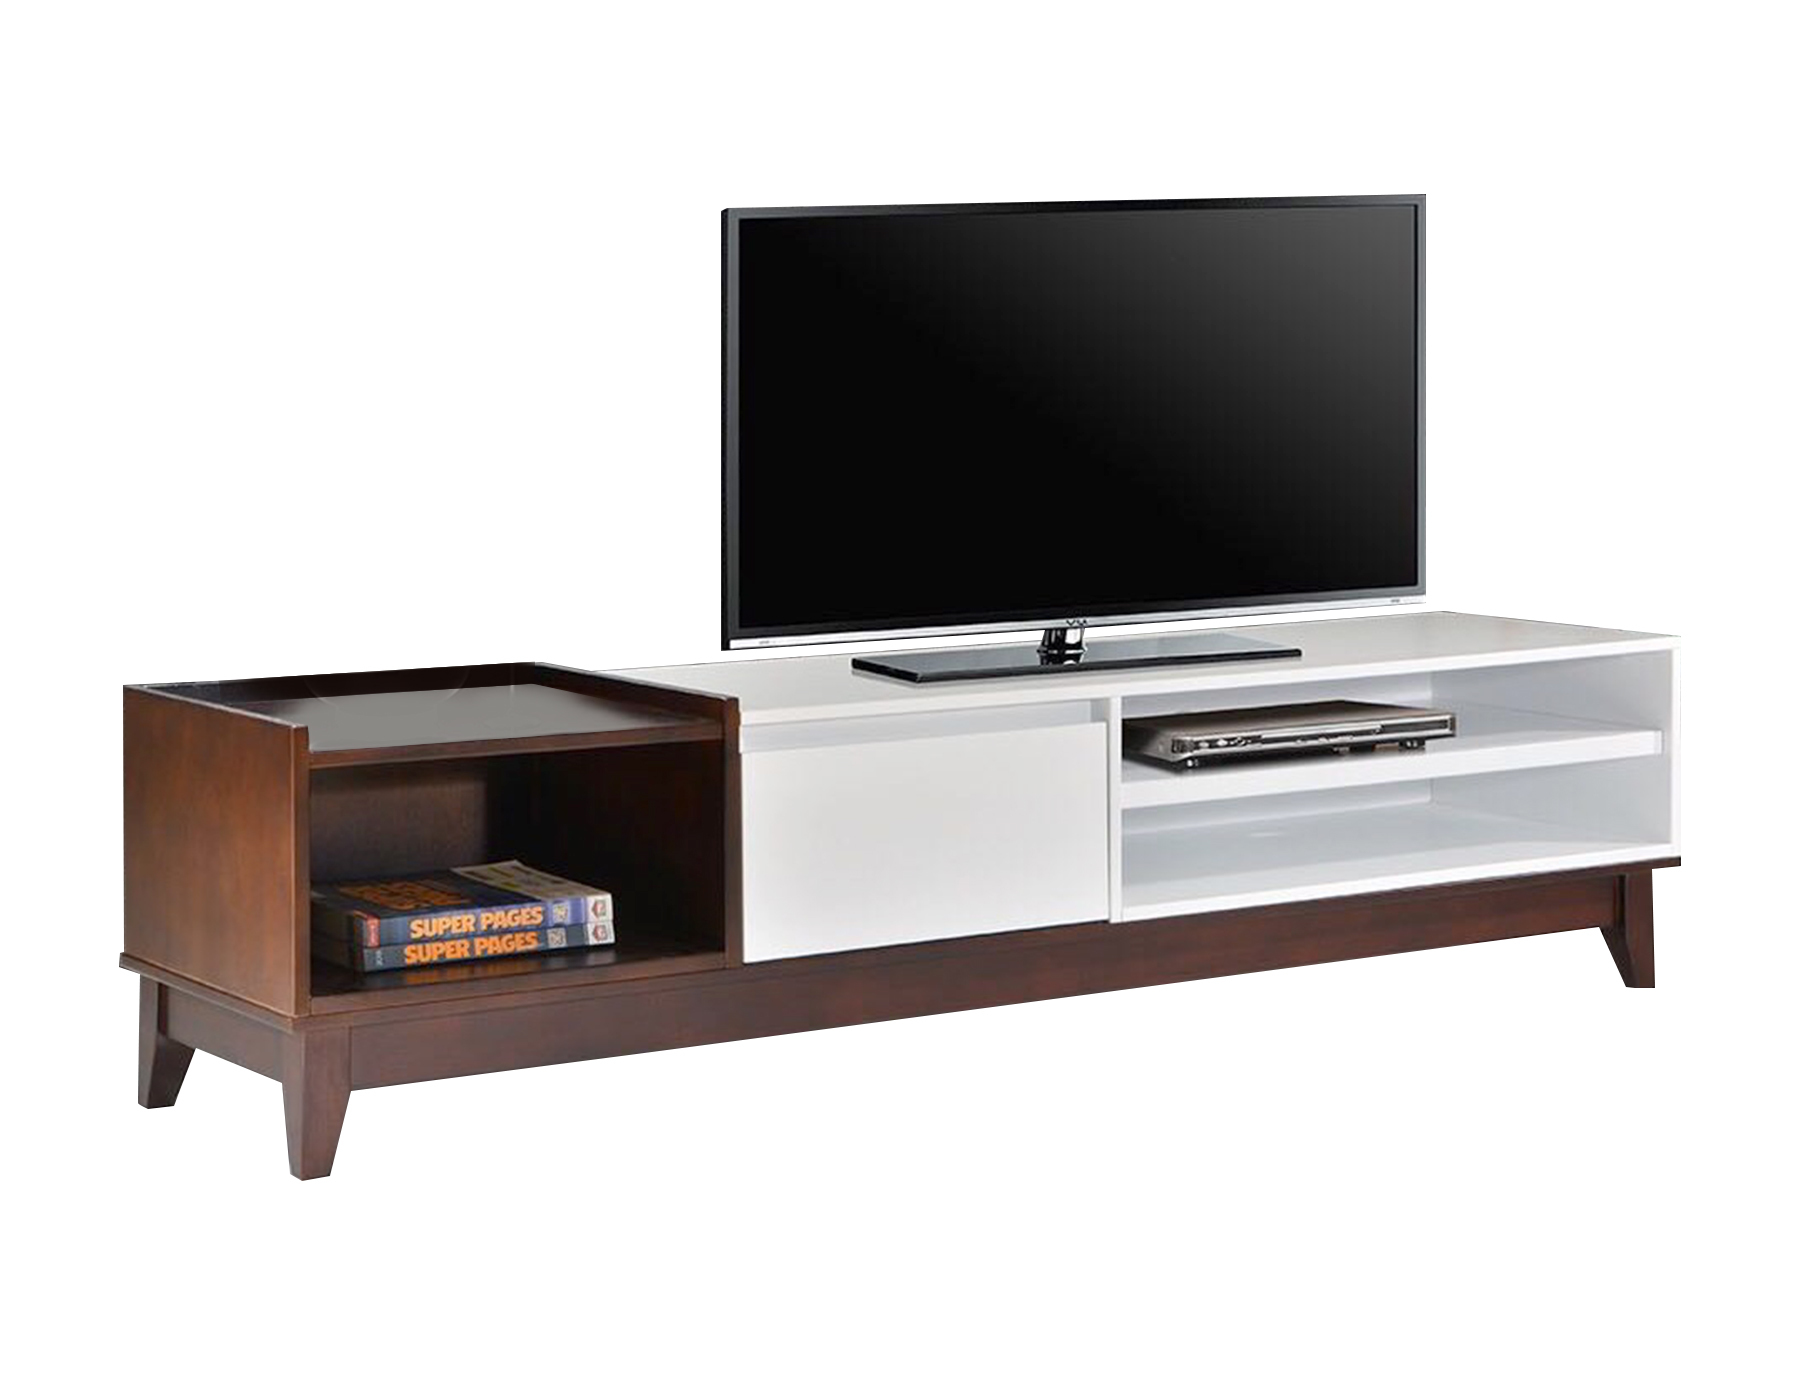 TV rack 10 79 6ft.jpg